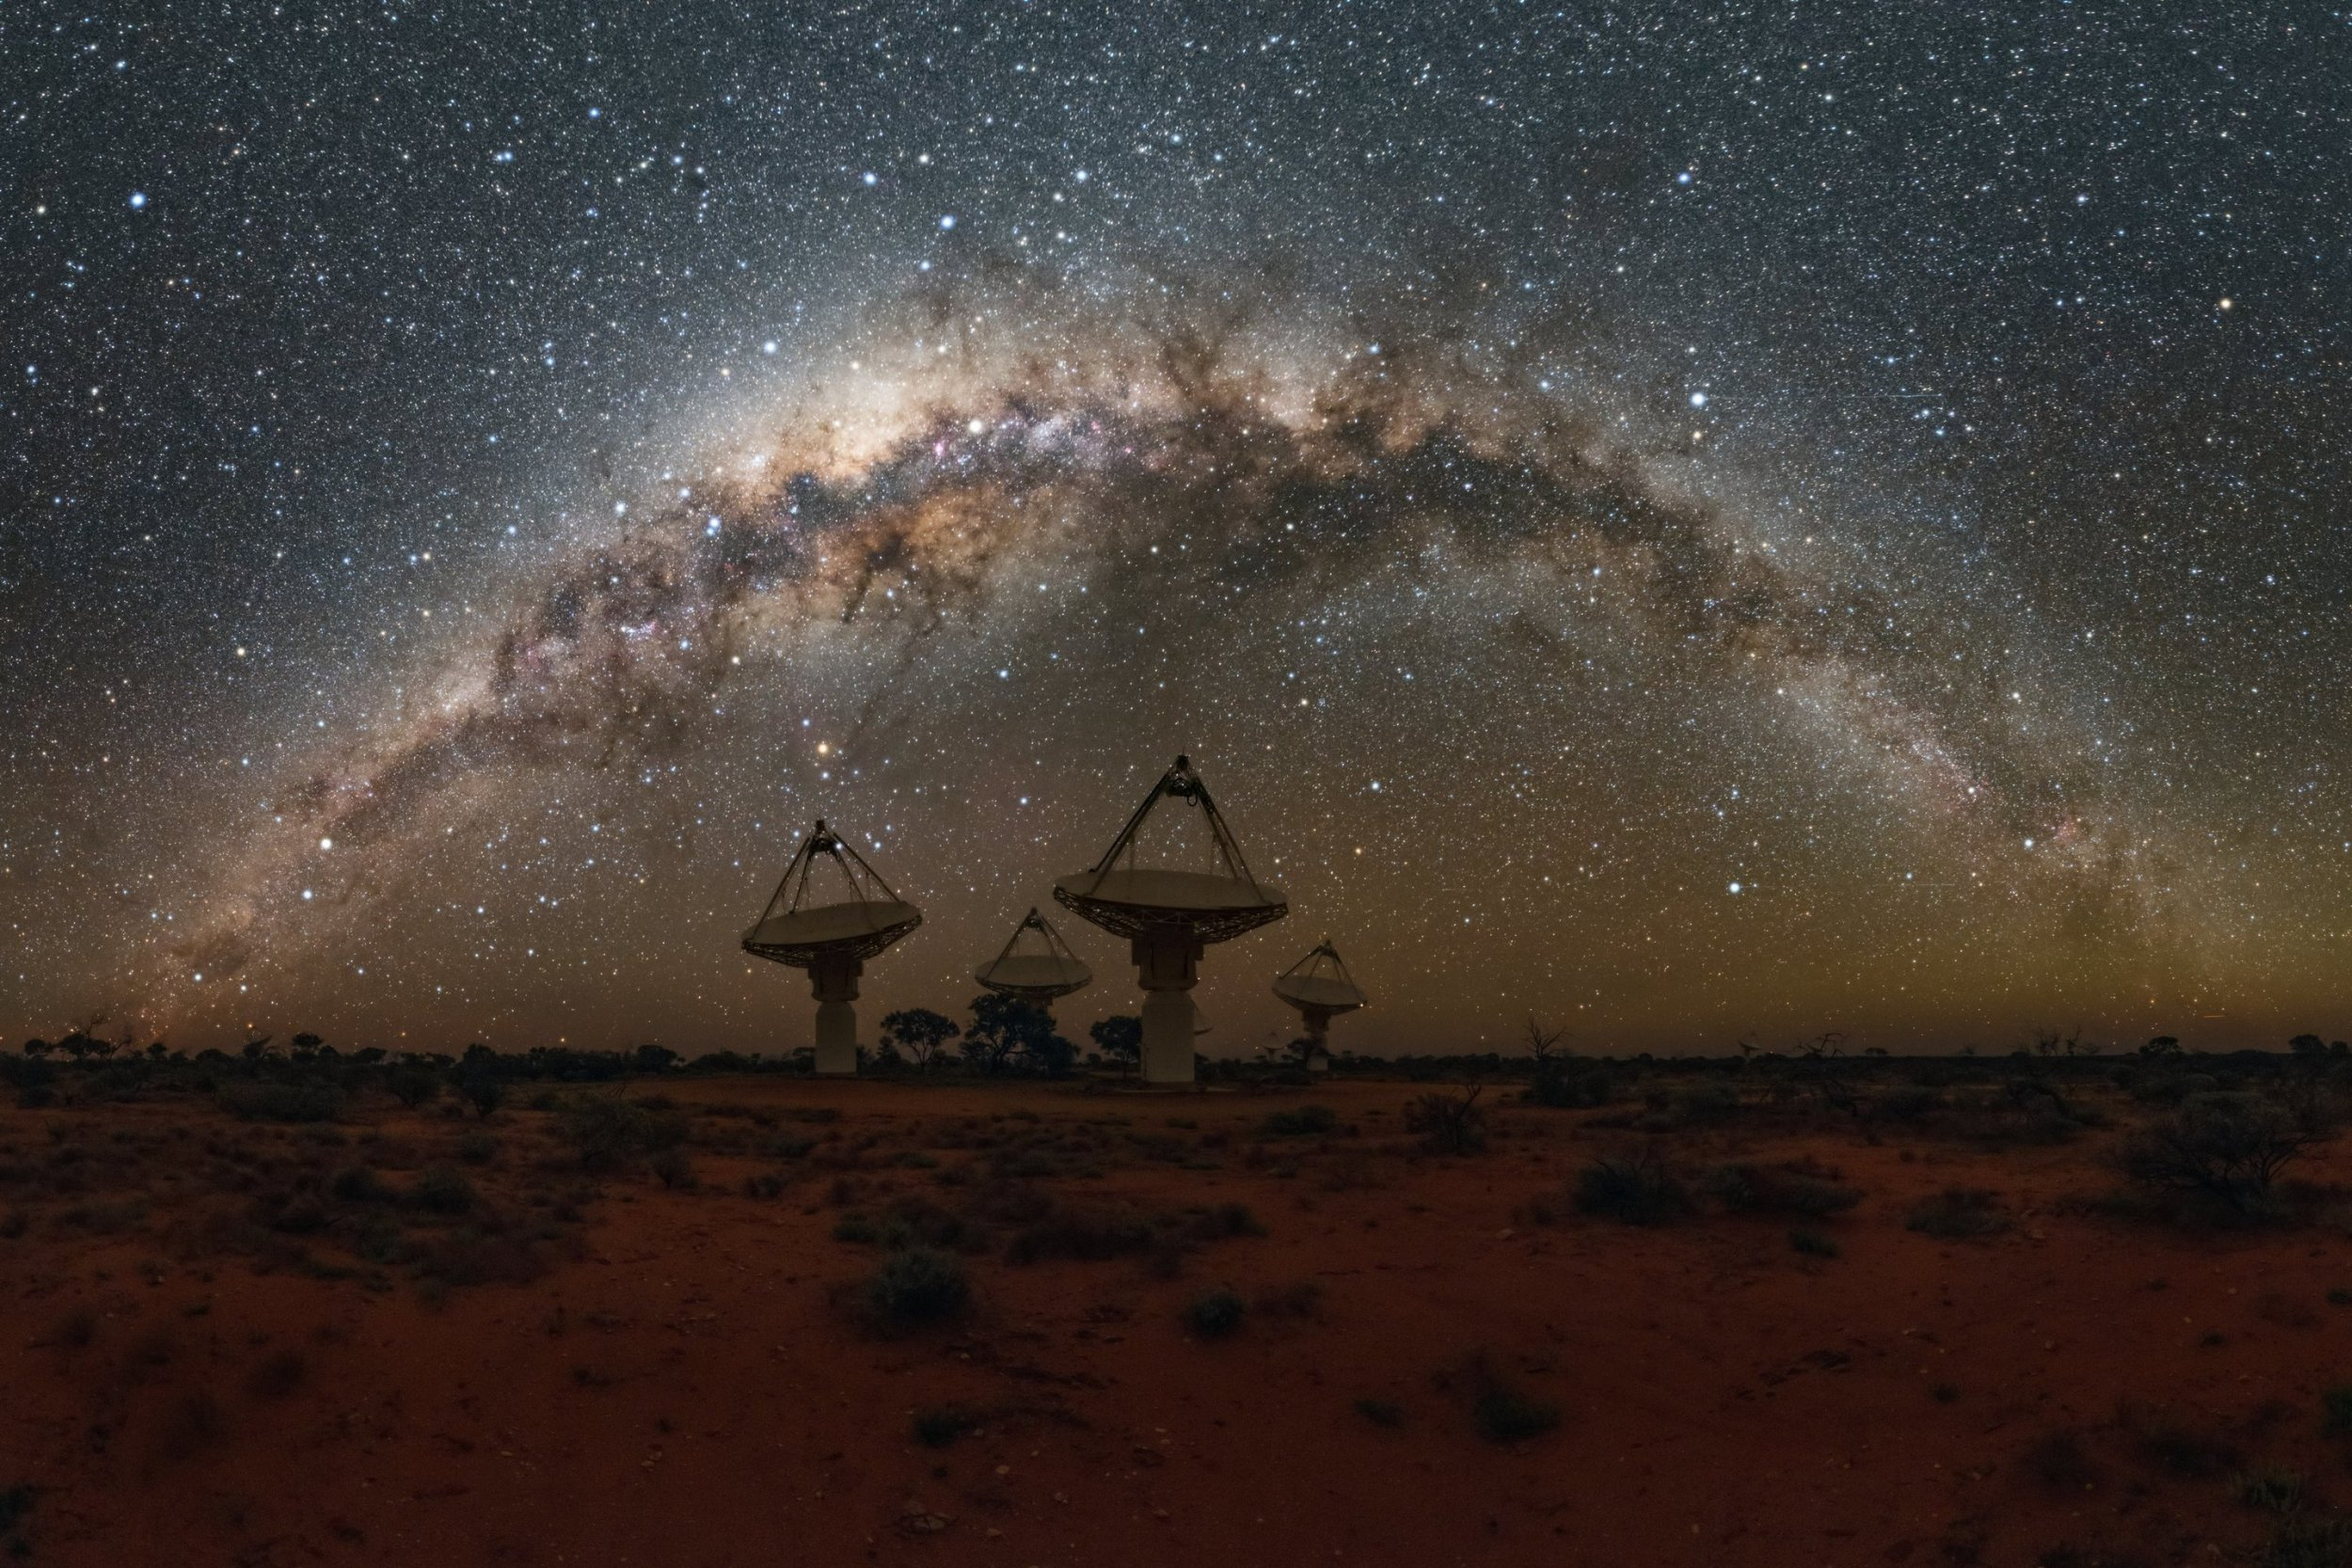 Antennas of CSIRO's Australian SKA Pathfinder with the Milky Way overhead. Credit: Alex Cherney/CSIRO Read more at: https://phys.org/news/2018-10-aussie-telescope-mysterious-fast-radio.html#jCp Science/fast radio bursts